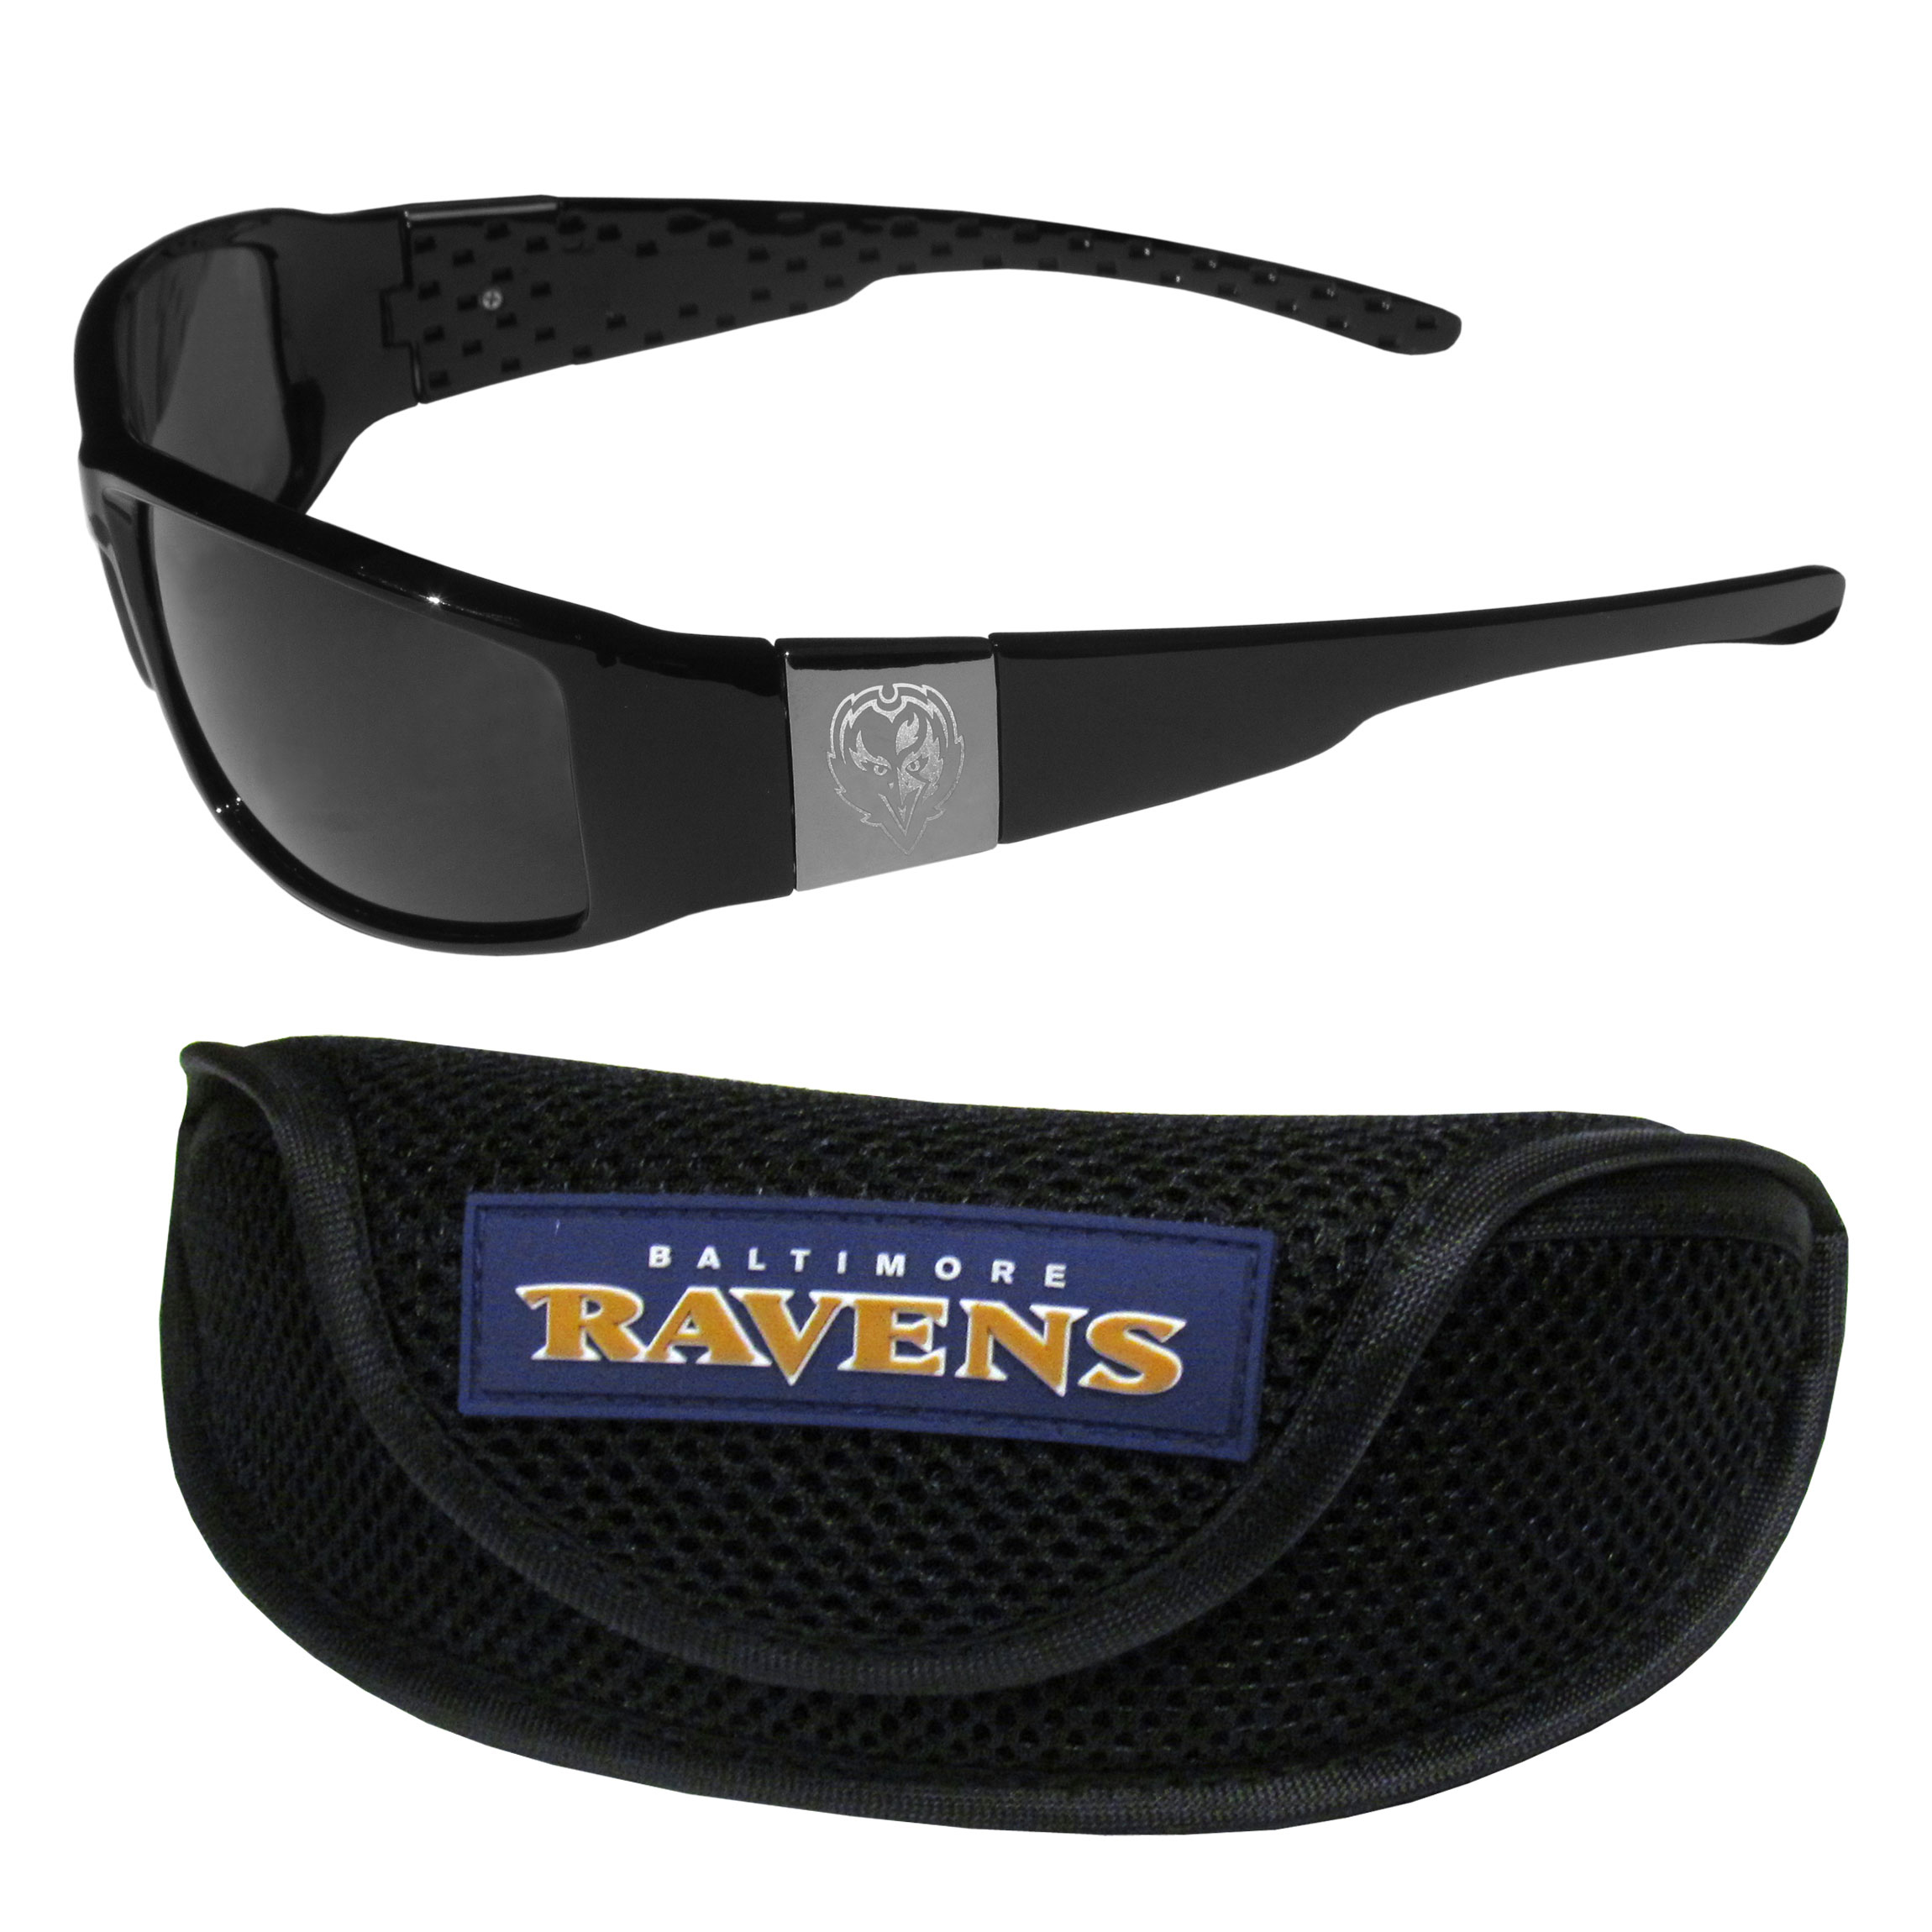 Baltimore Ravens Chrome Wrap Sunglasses and Sports Case - Our sleek and stylish Baltimore Ravens chrome wrap sunglasses and our sporty mesh case. The sunglasses feature etched team logos on each arm and 100% UVA/UVB protection. The case features a large and colorful team emblem.